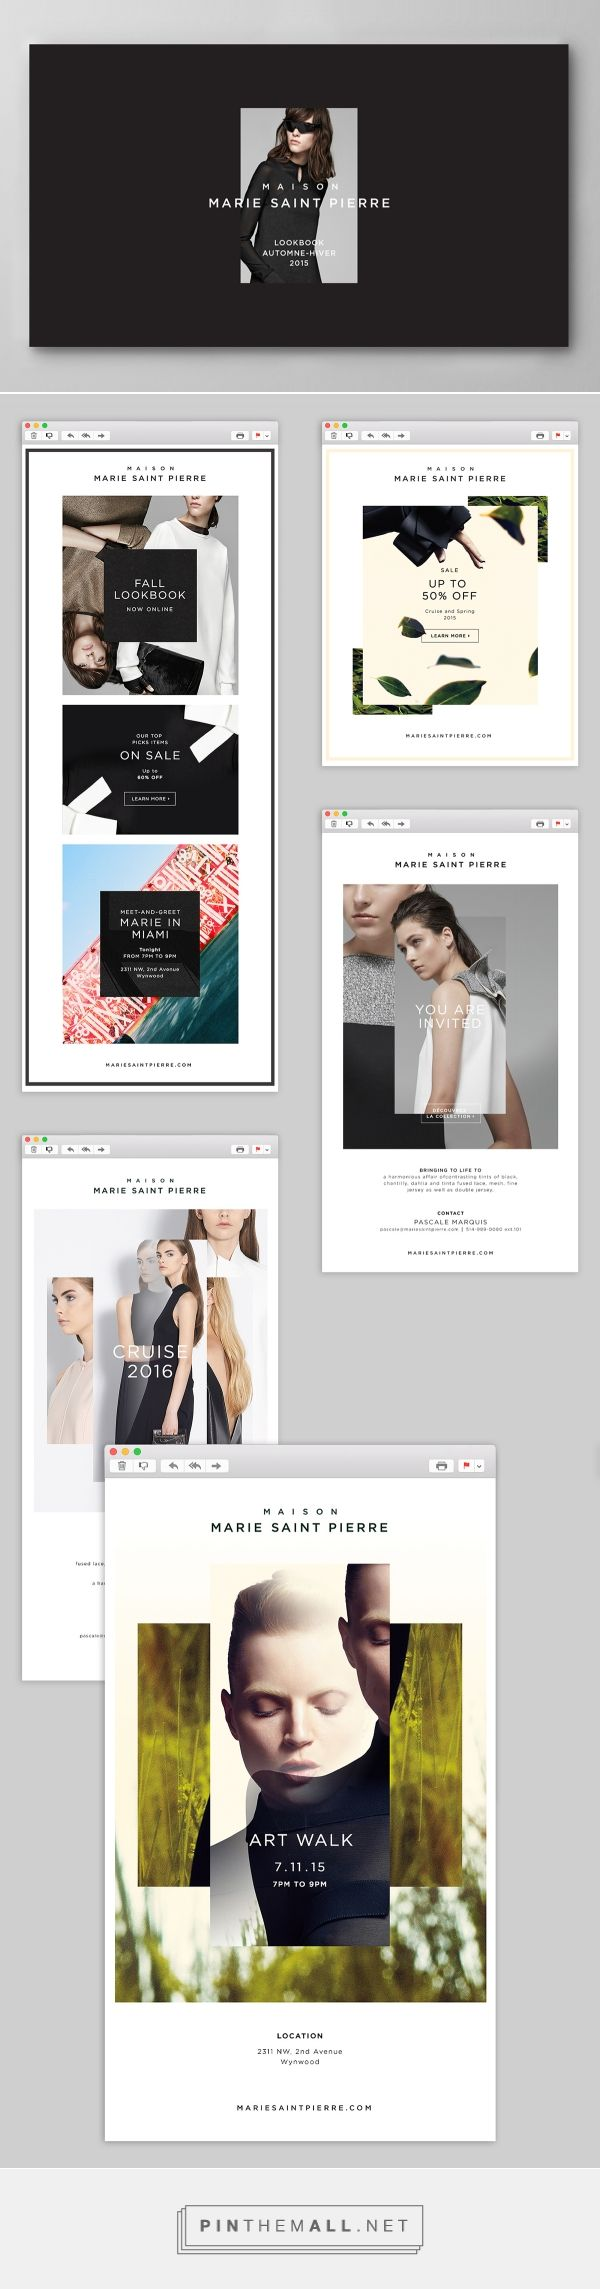 Maison Marie Saint Pierre - lookbook & Newsletters on Behance - created via http://pinthemall.net